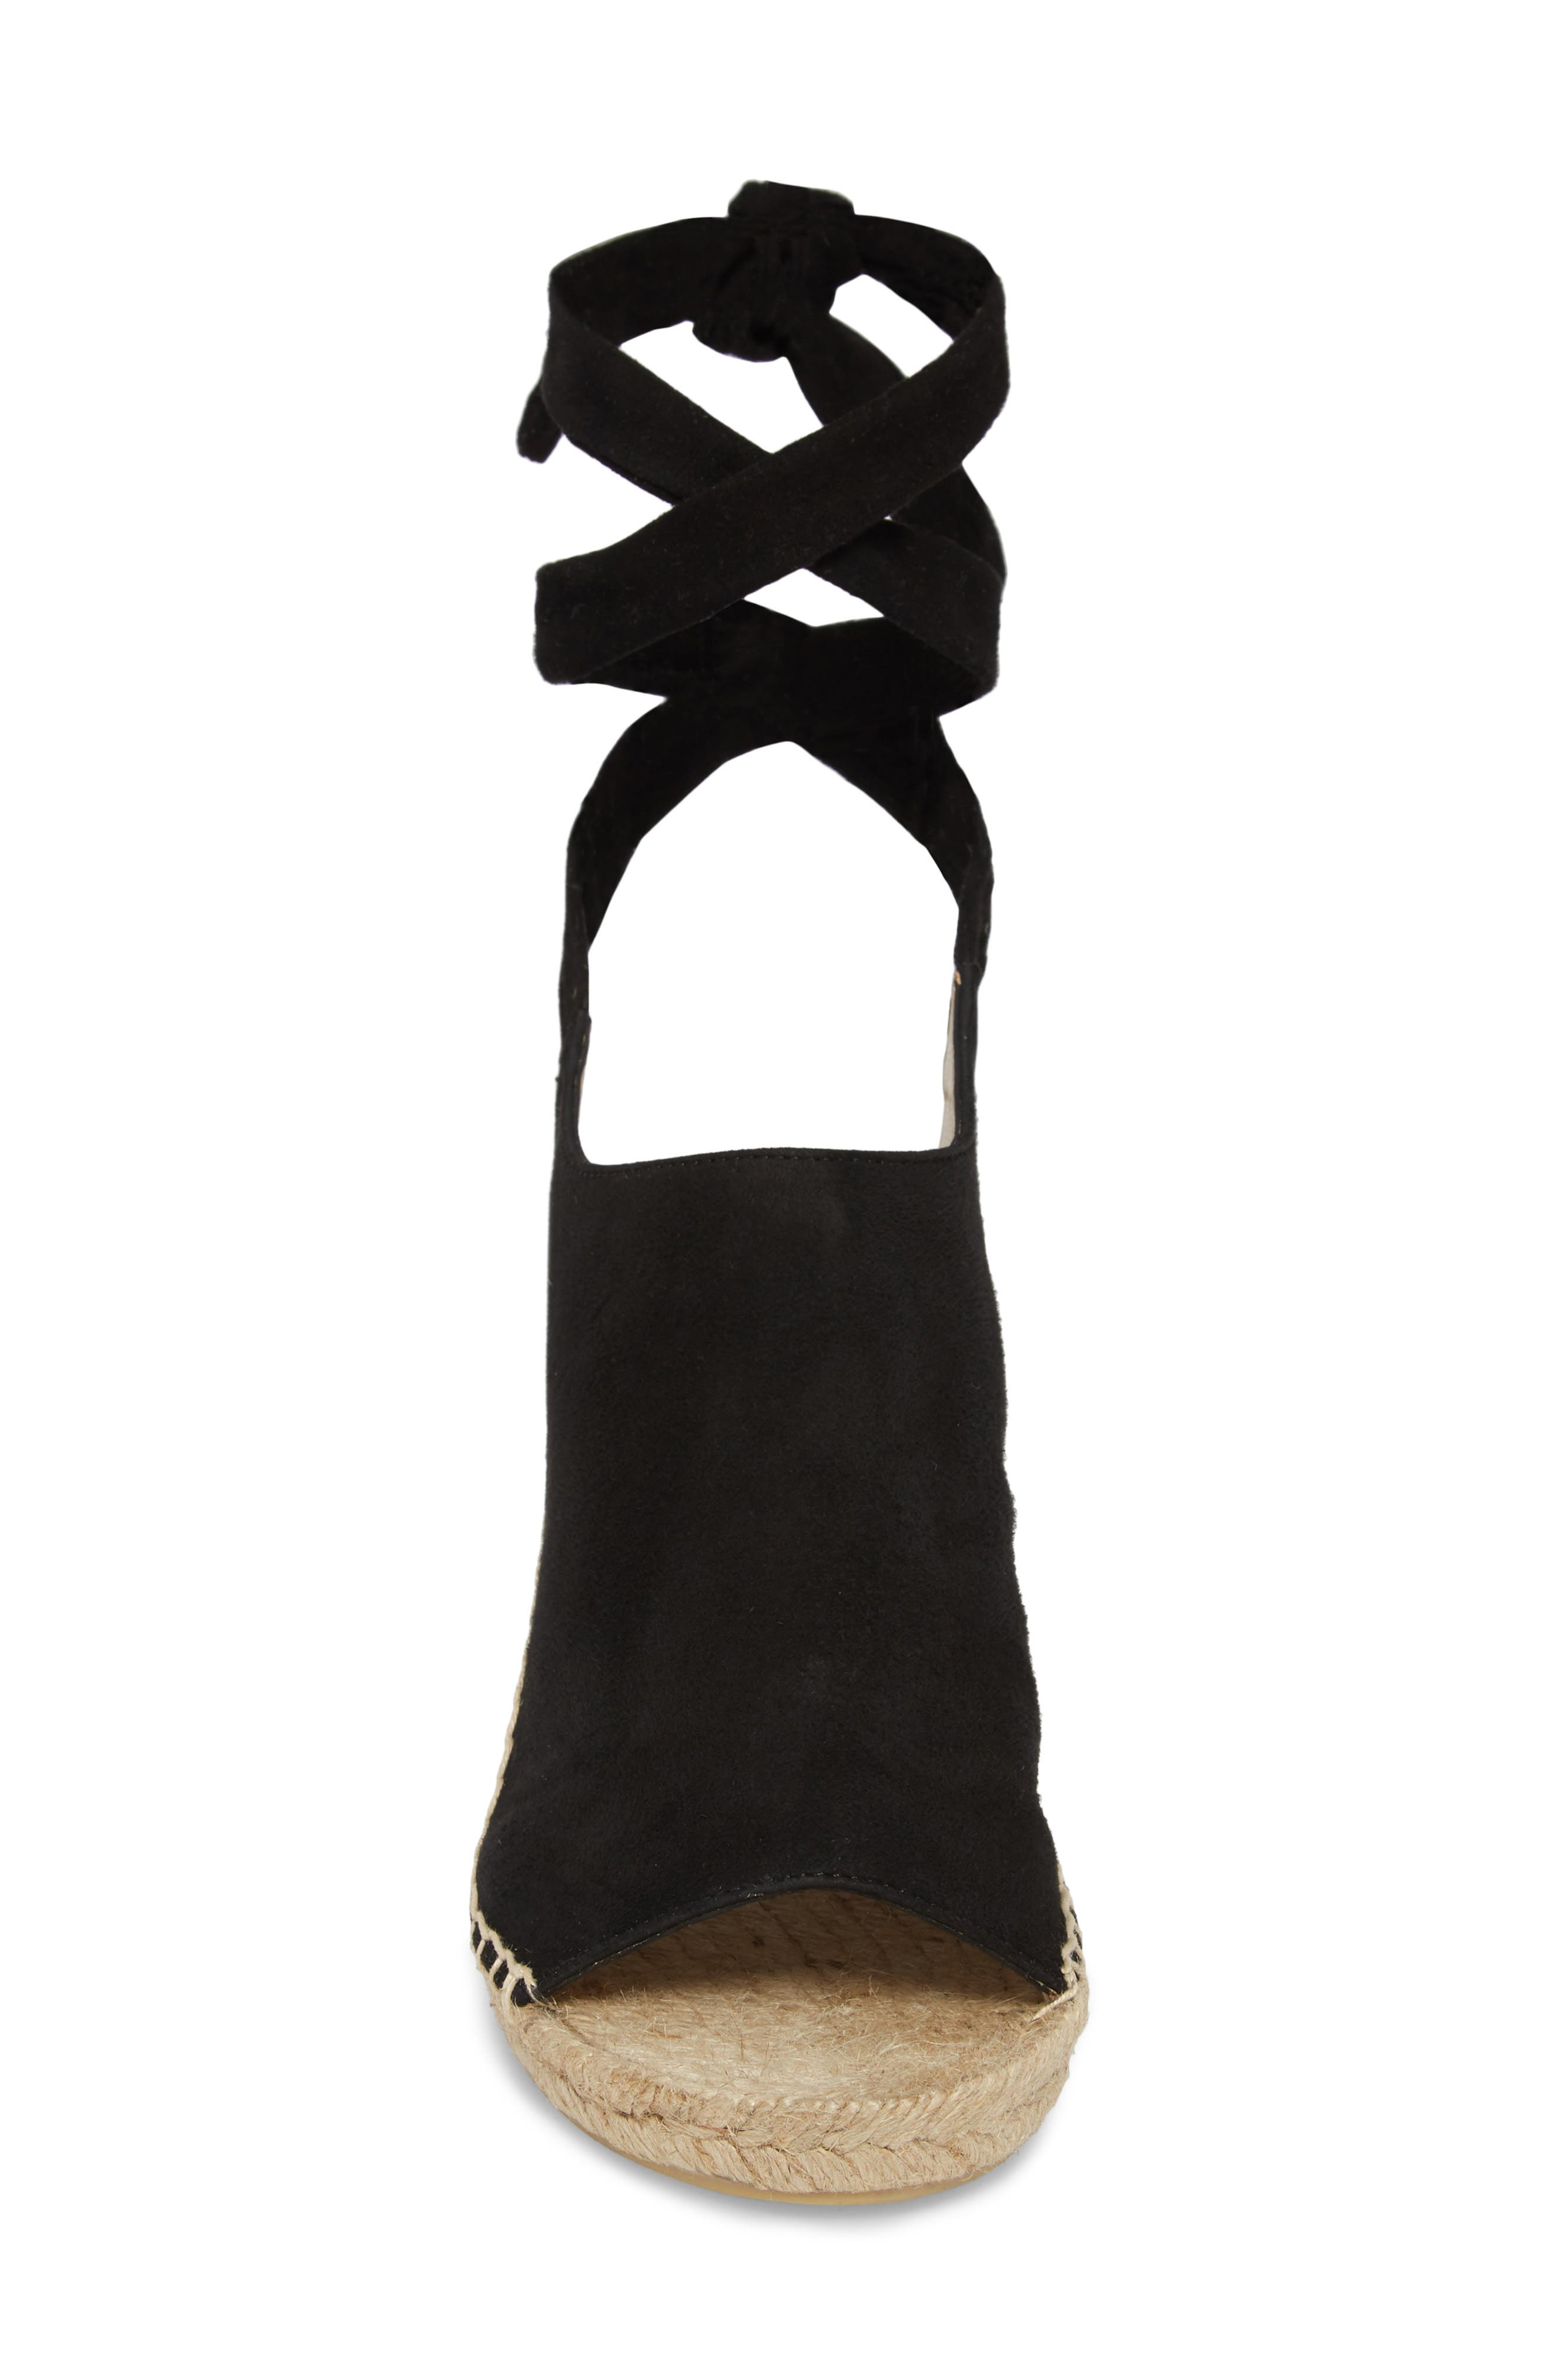 Vie Espadrille Wedge Sandal,                             Alternate thumbnail 4, color,                             BLACK SUEDE